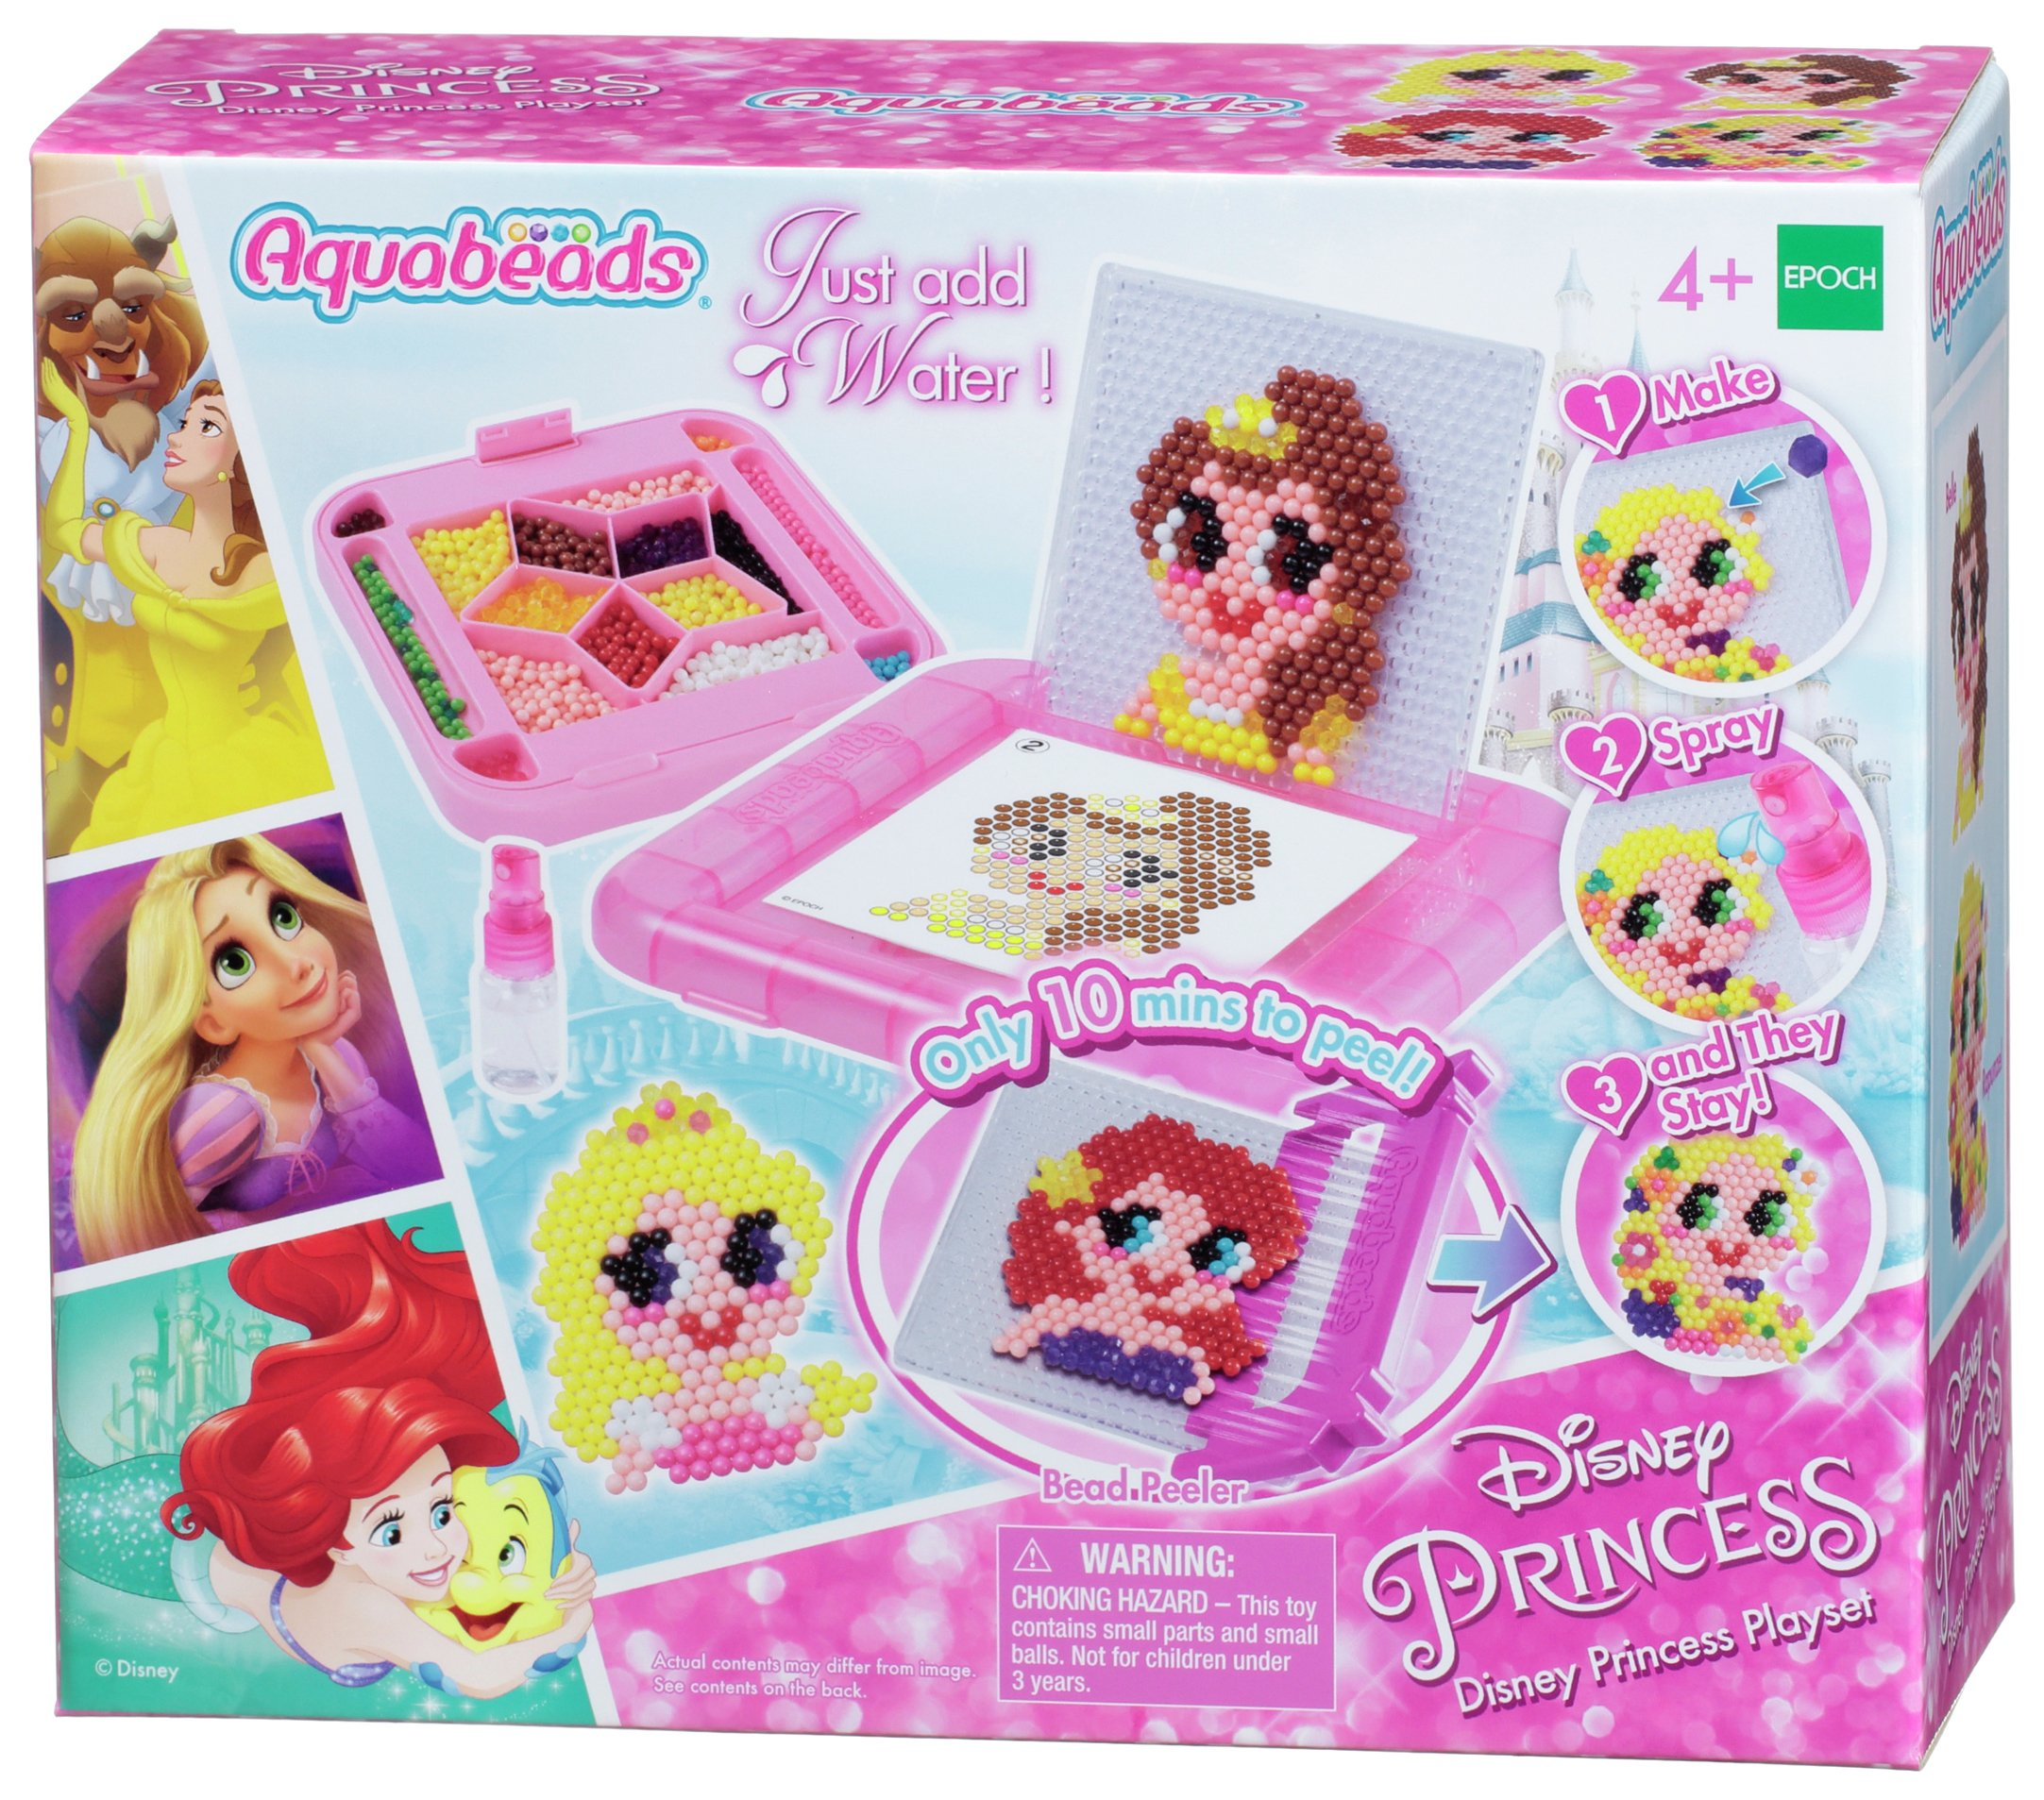 Aquabeads Disney Princess Playset.